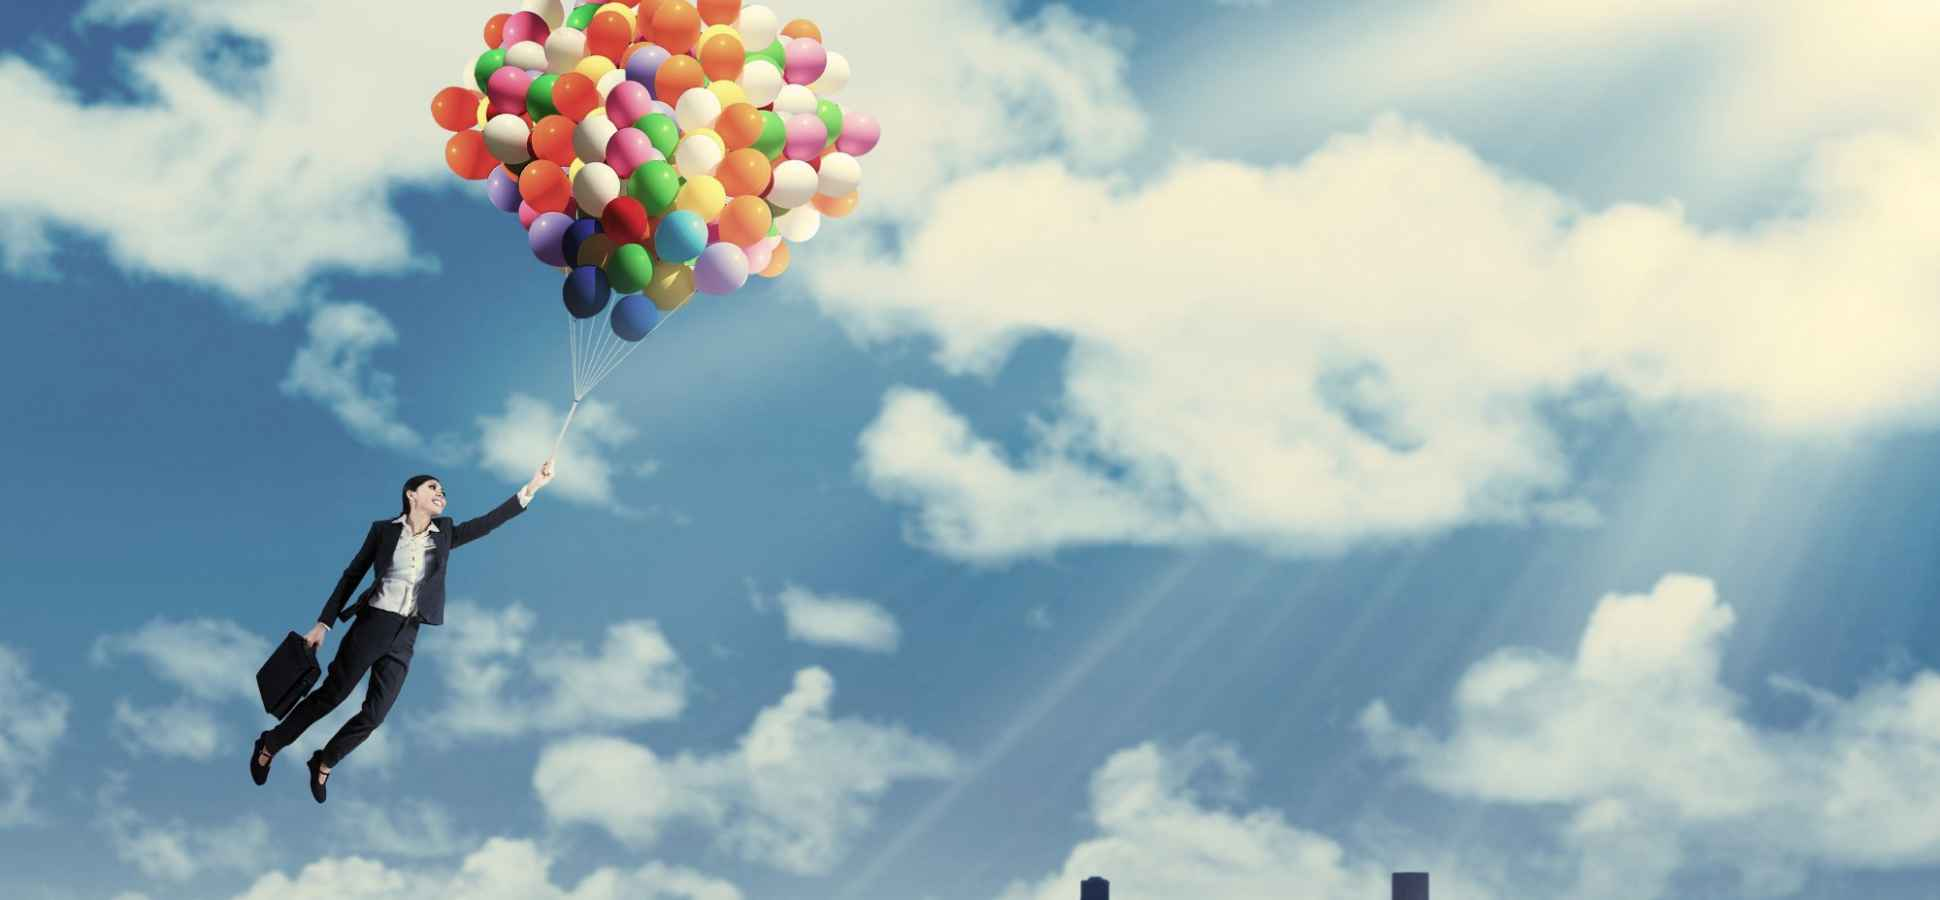 5 Simple Ways to Discover Your Life's Purpose